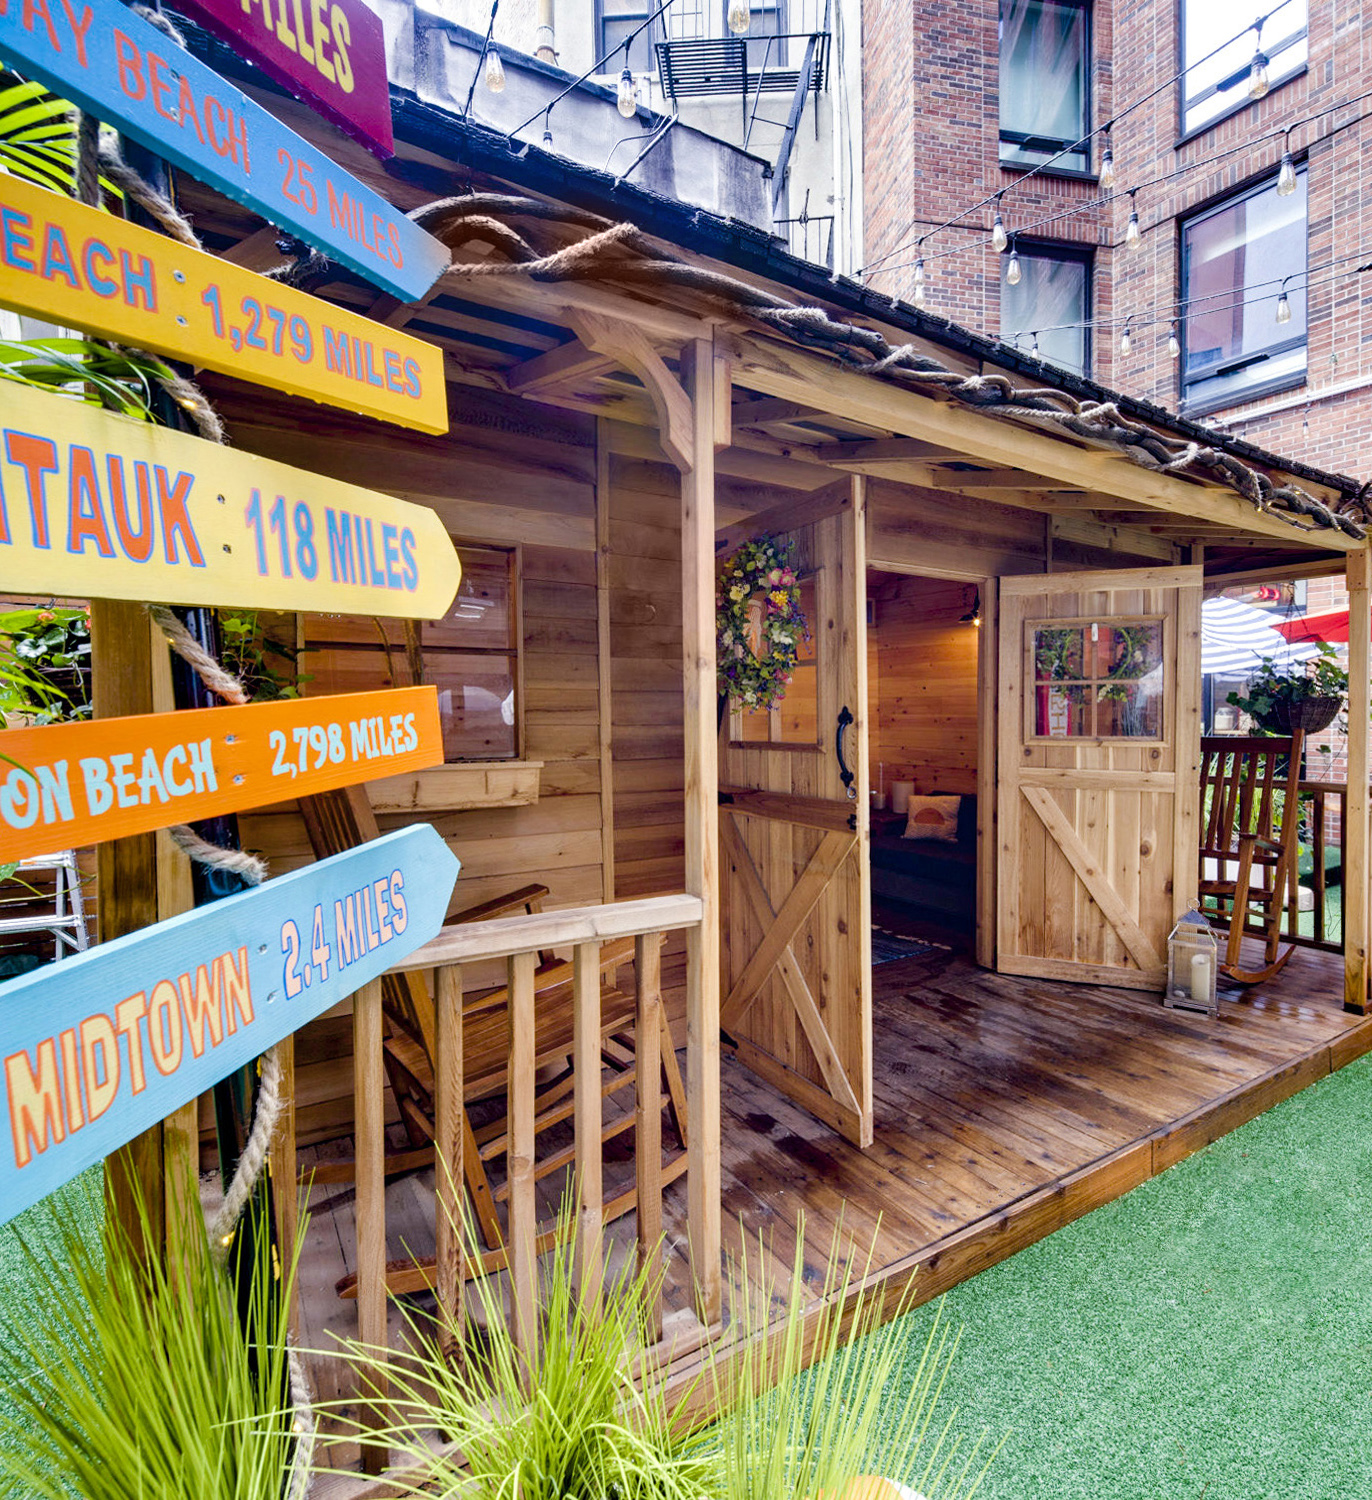 Cedar cabins in Arlo SoHo outdoor Courtyard with a bright multi color wooden sign post on the left indicating mileage to different beaches and ground is covered with green astroturf and green dune grass